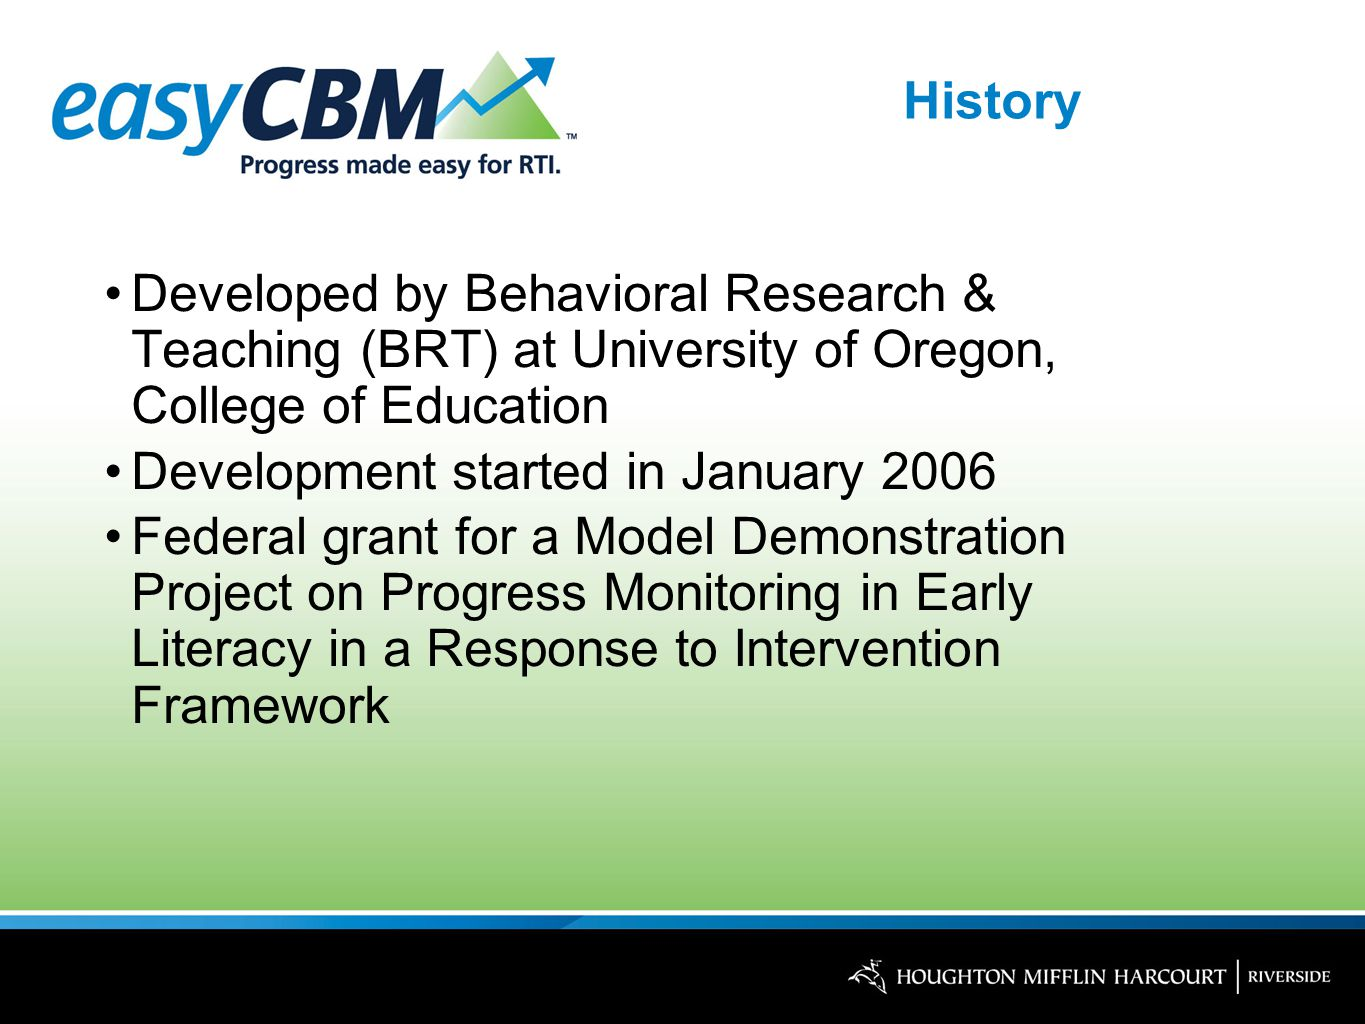 History Developed by Behavioral Research & Teaching (BRT) at University of Oregon, College of Education Development started in January 2006 Federal grant for a Model Demonstration Project on Progress Monitoring in Early Literacy in a Response to Intervention Framework